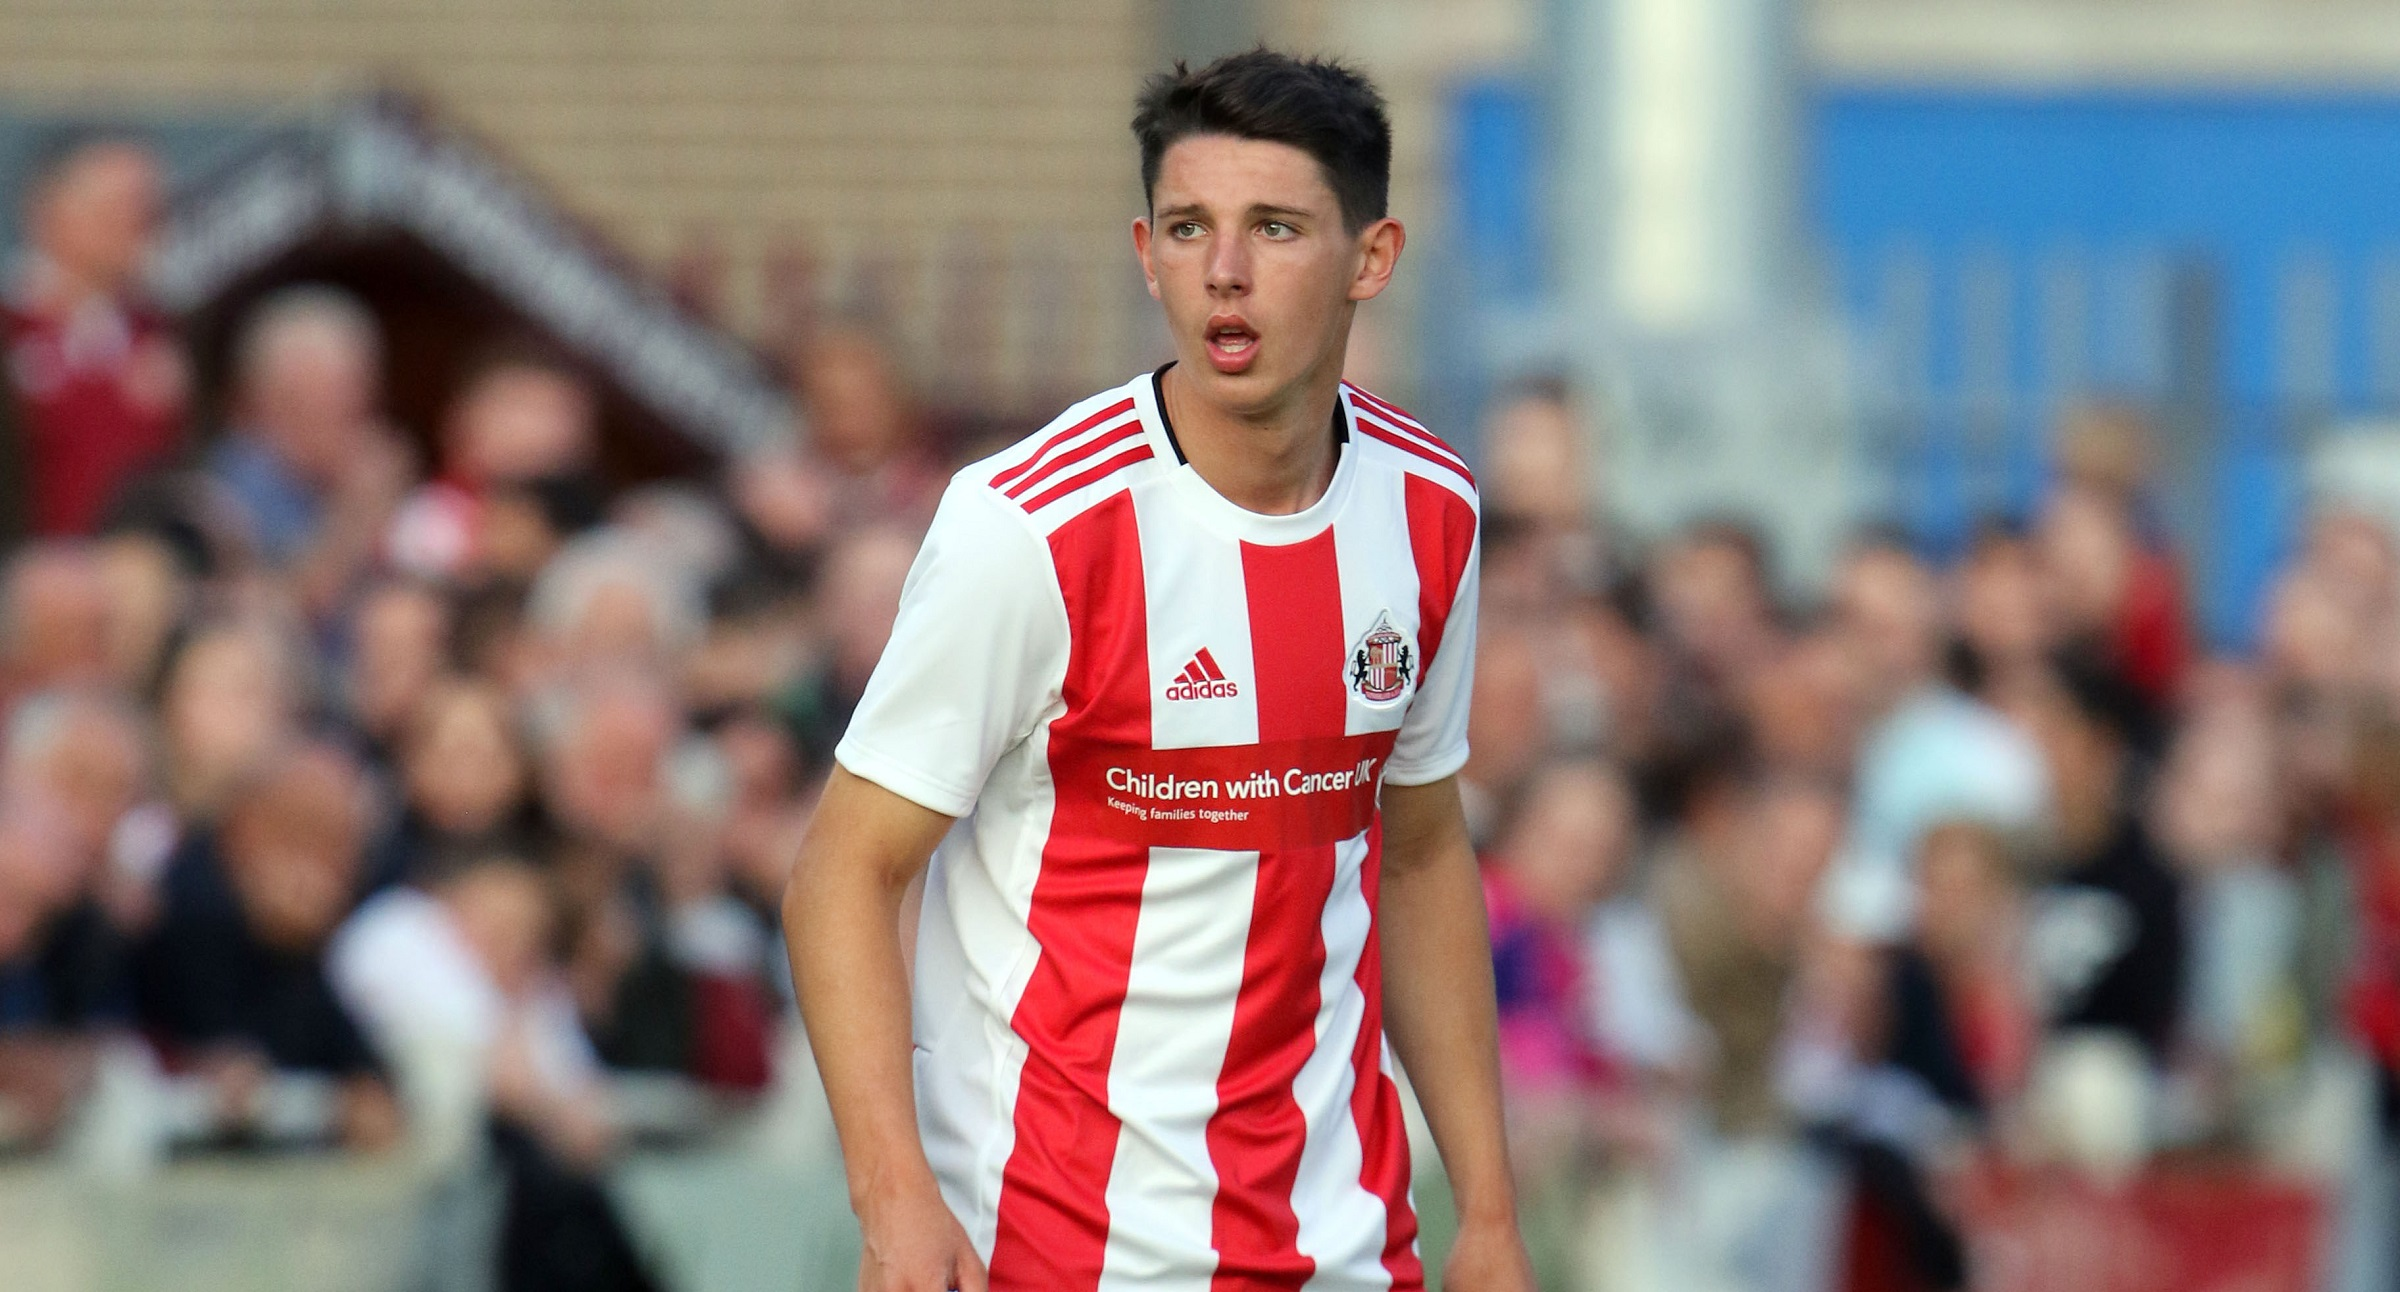 Jordan Hunter joins Shields on loan from Sunderland